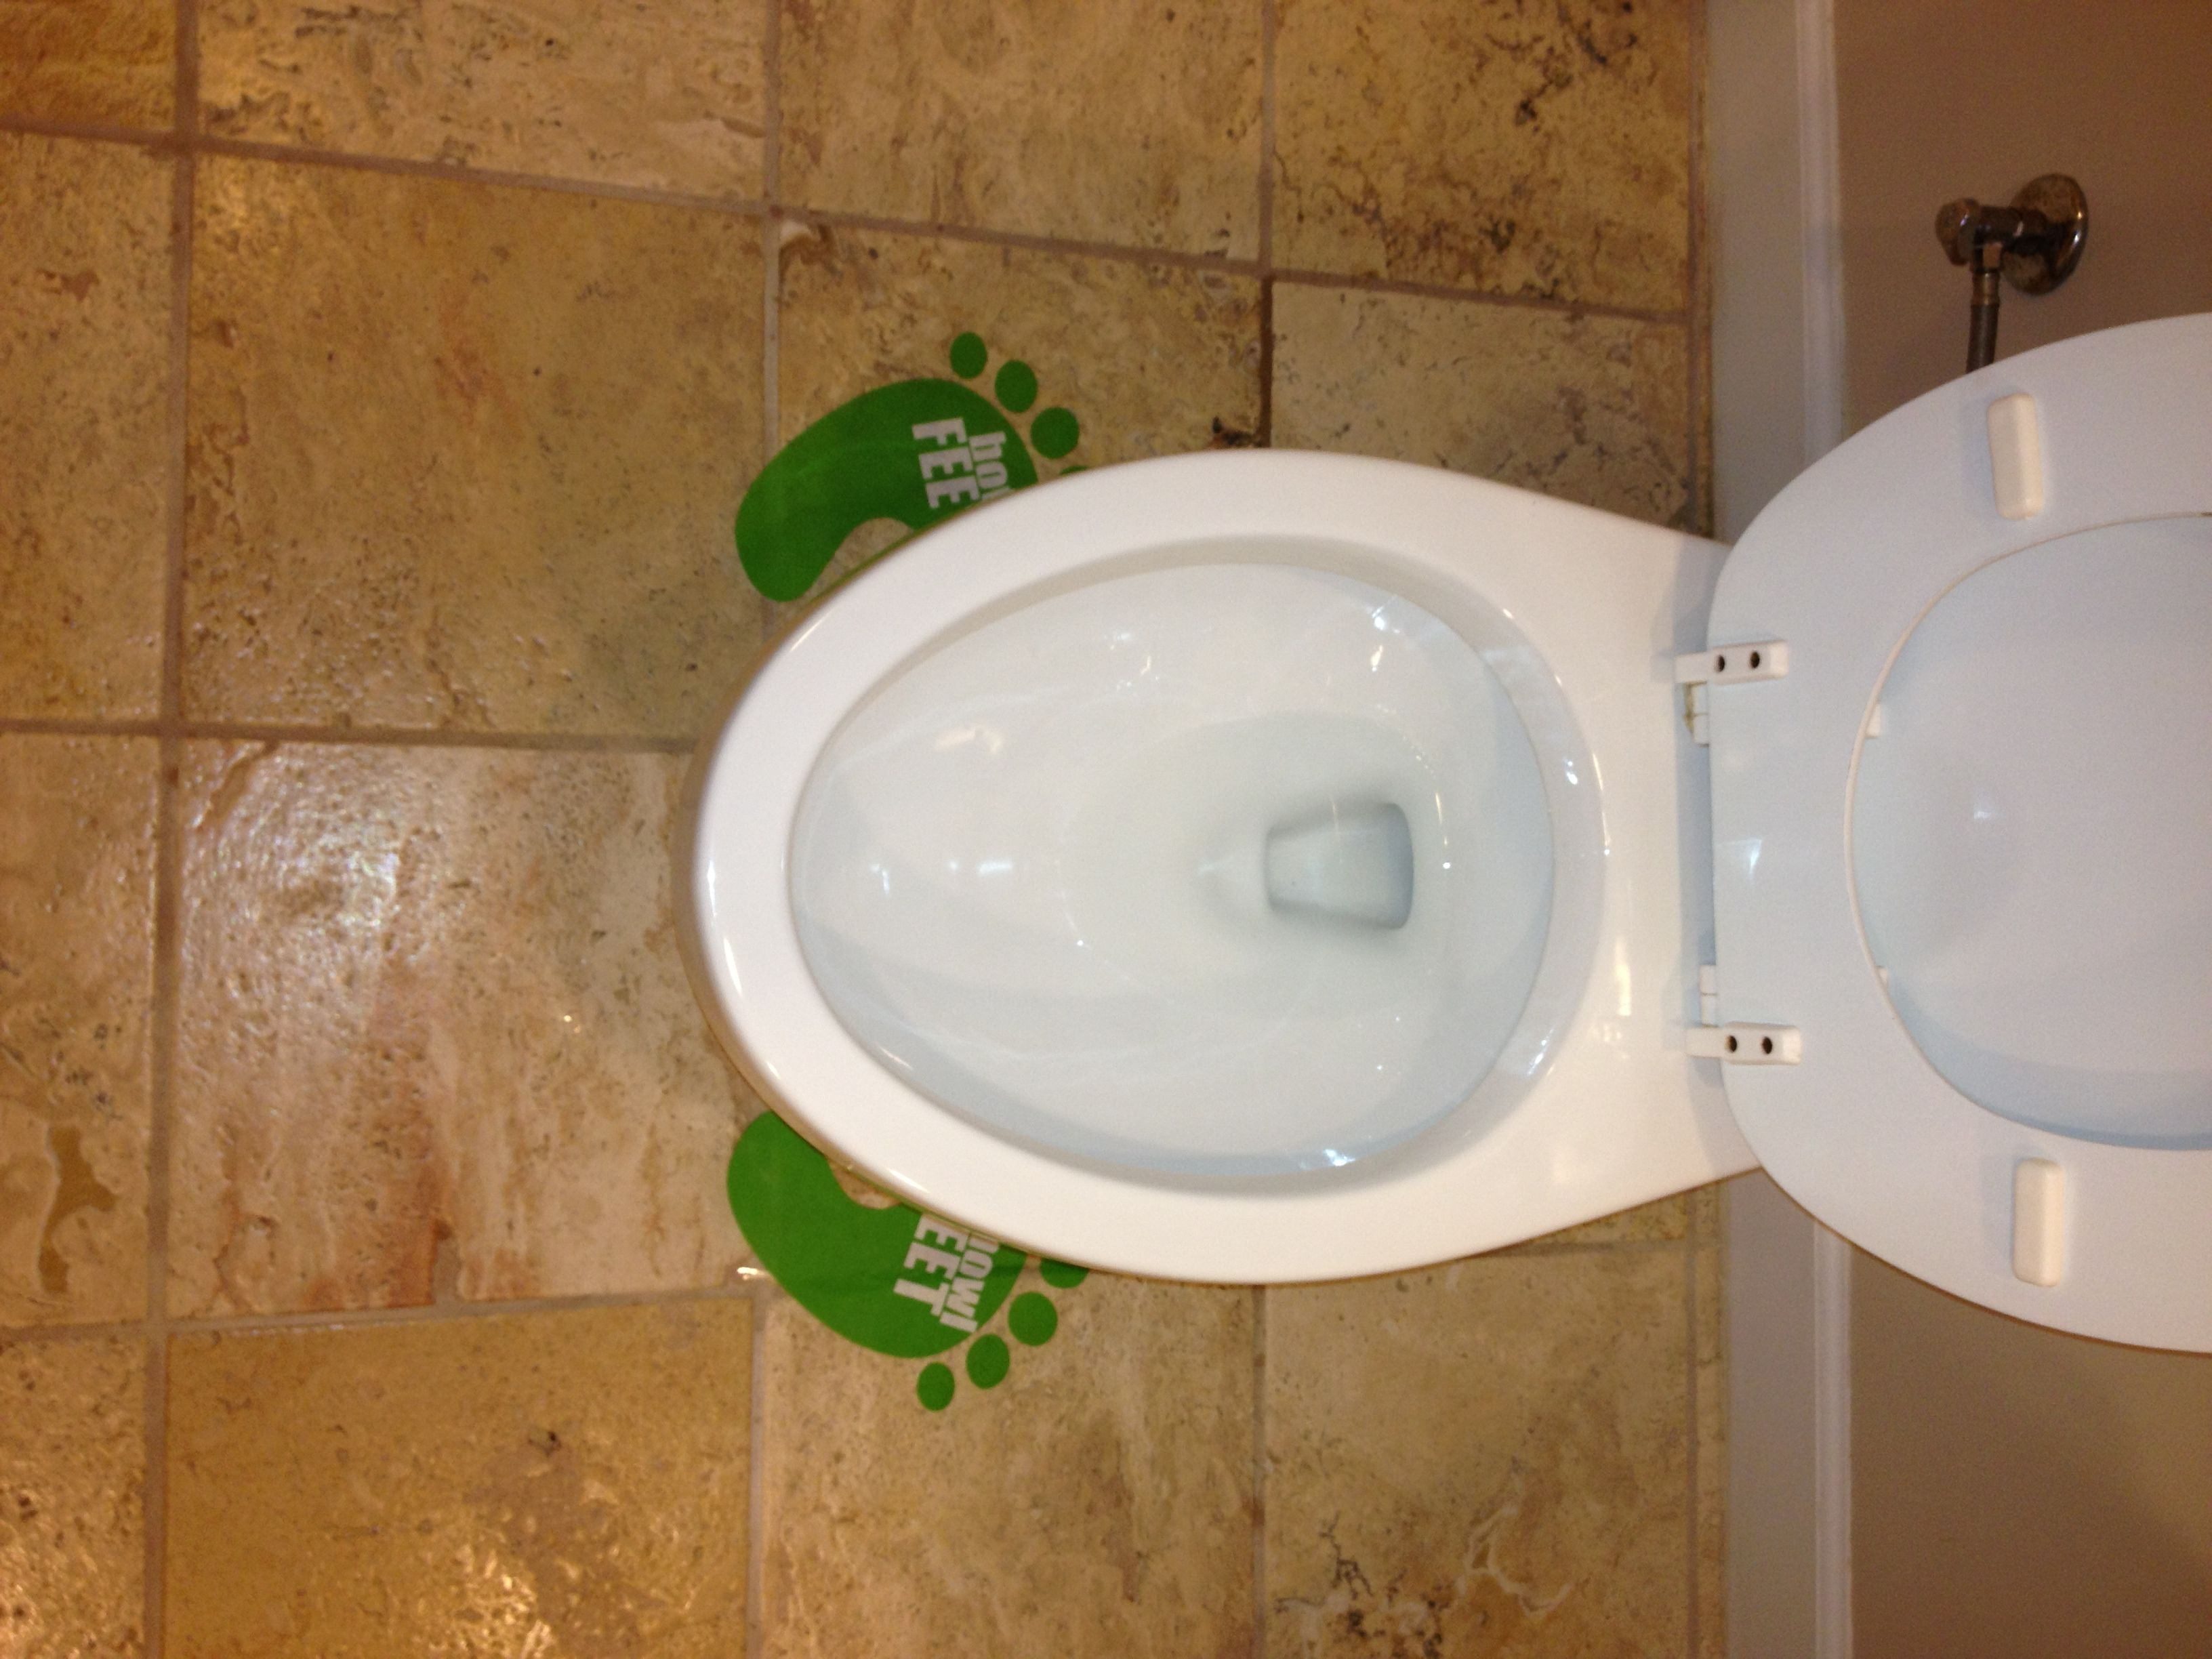 No more pee on the seat or floors. Serious.